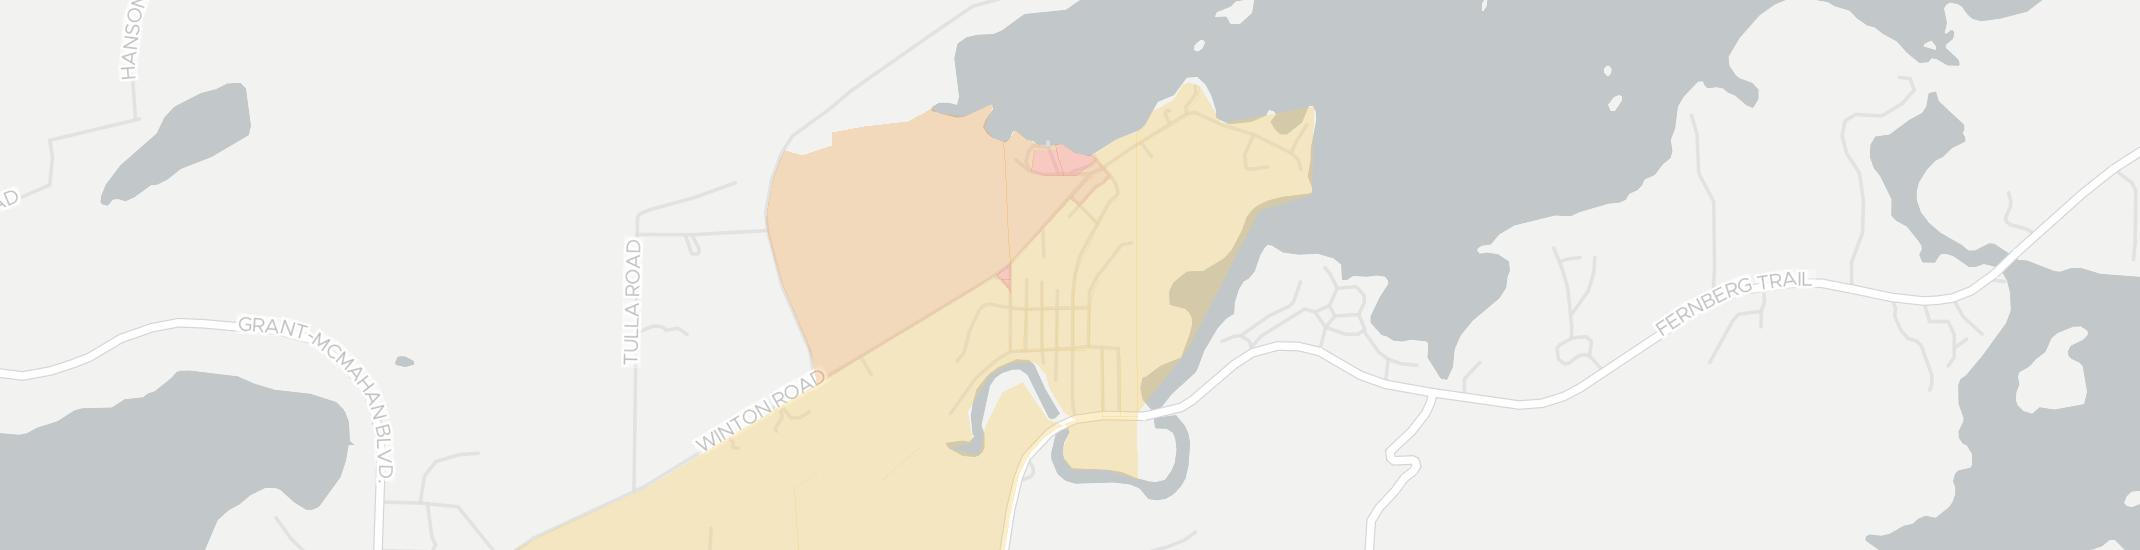 Winton Internet Competition Map. Click for interactive map.